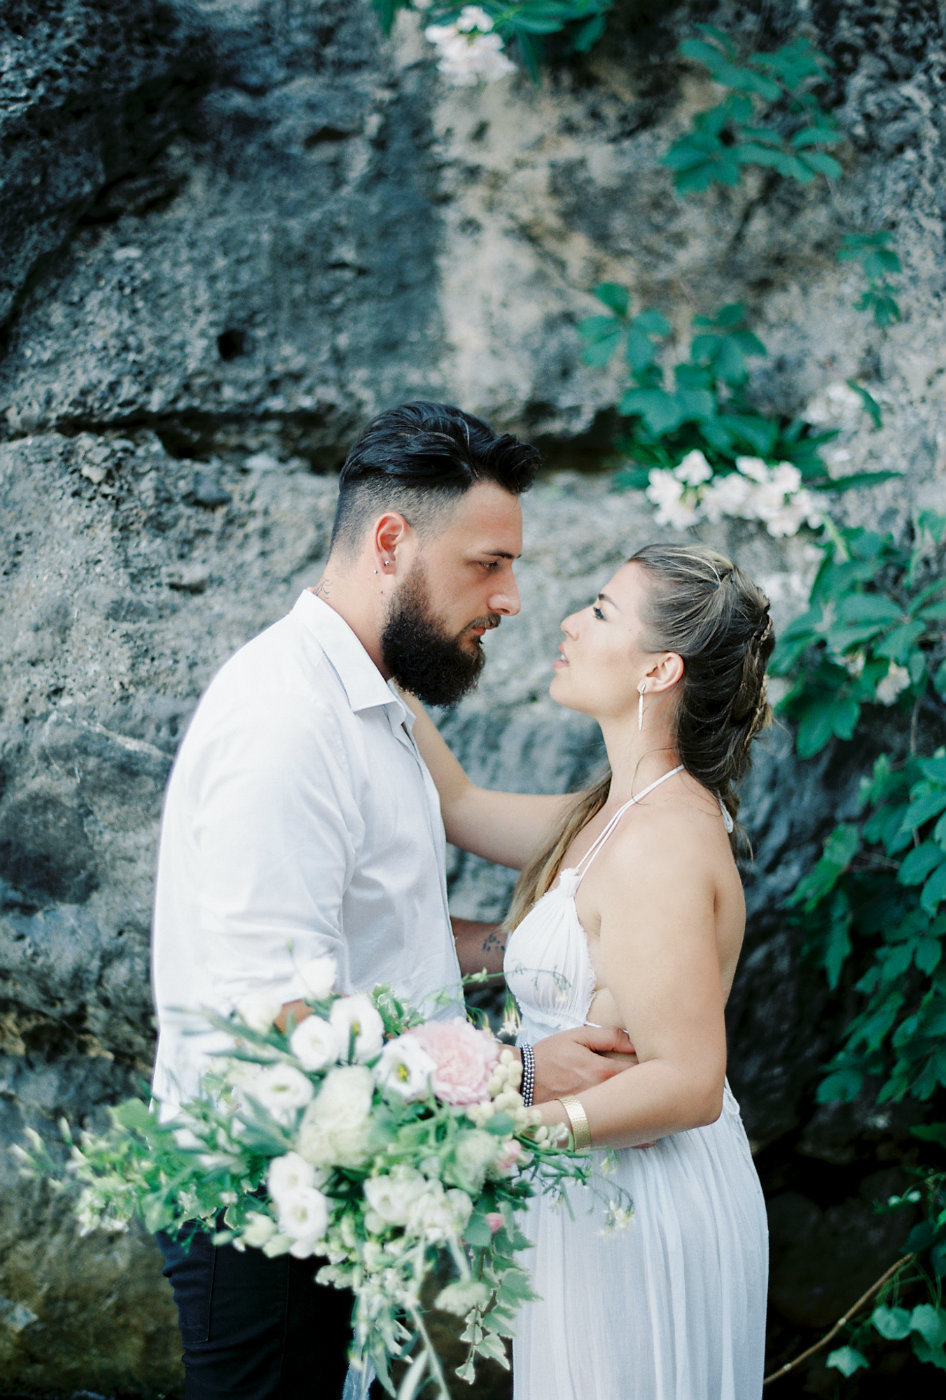 positano_italy_elopement_melanie_gabrielle_photography_107